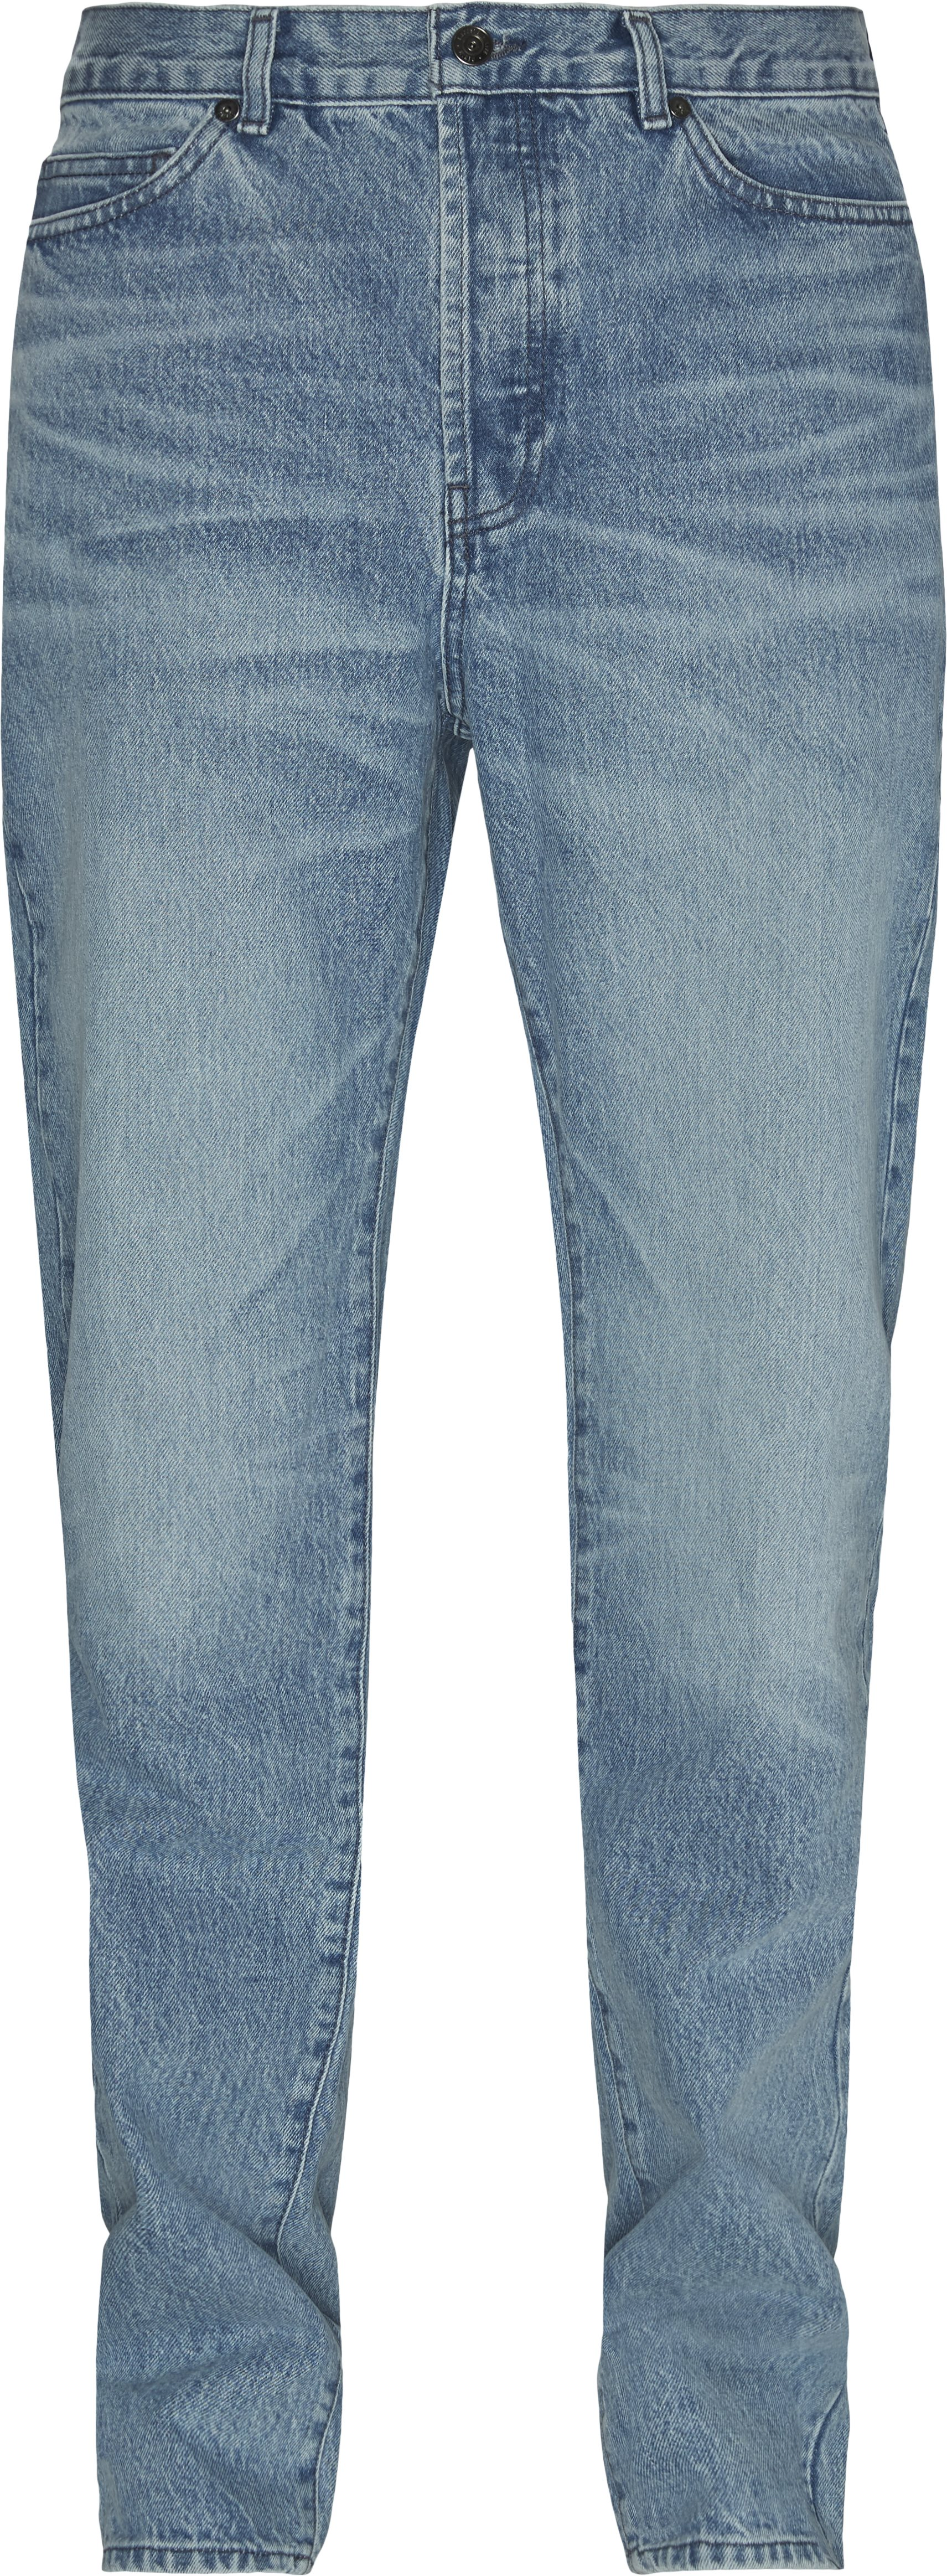 Five-Pocketed Faded Cotton Jeans - Jeans - Straight fit - Denim